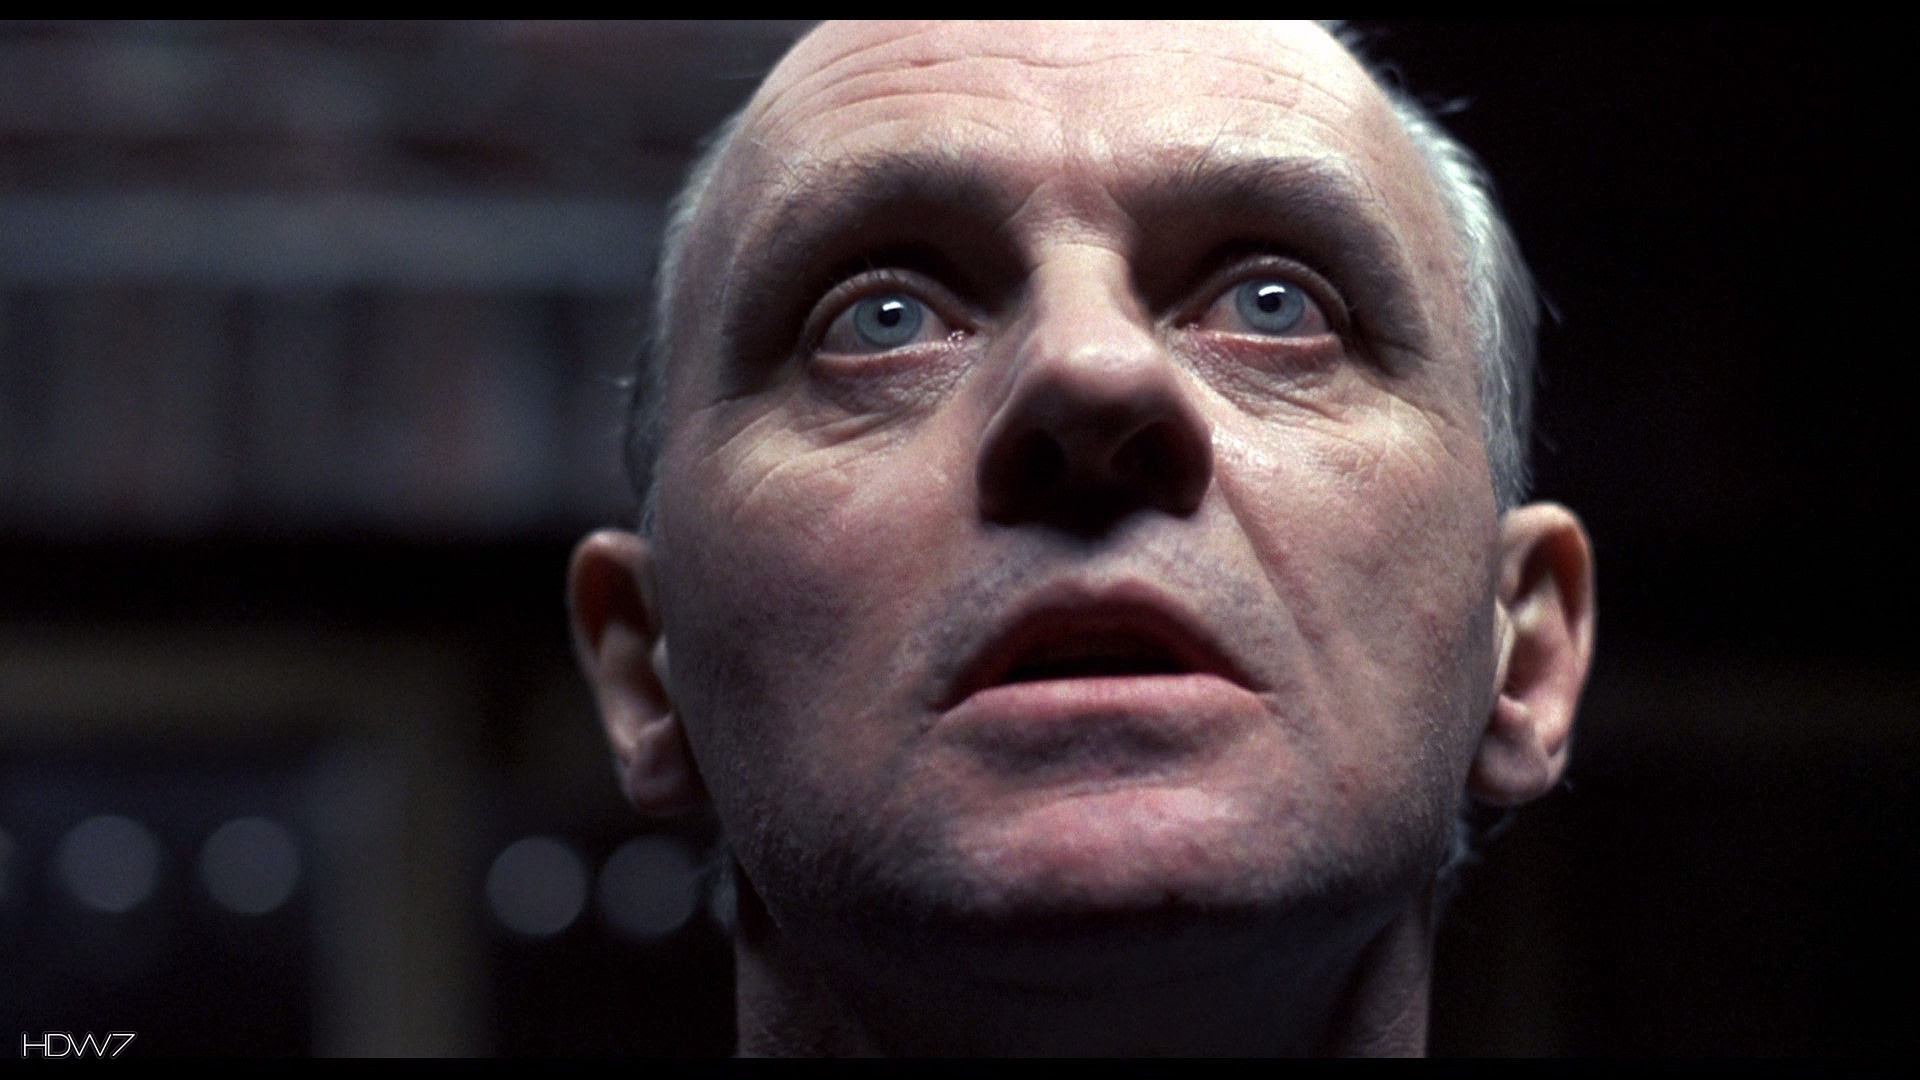 The Silence Of The Lambs Anthony Hopkins Hd Wallpaper Gallery 403